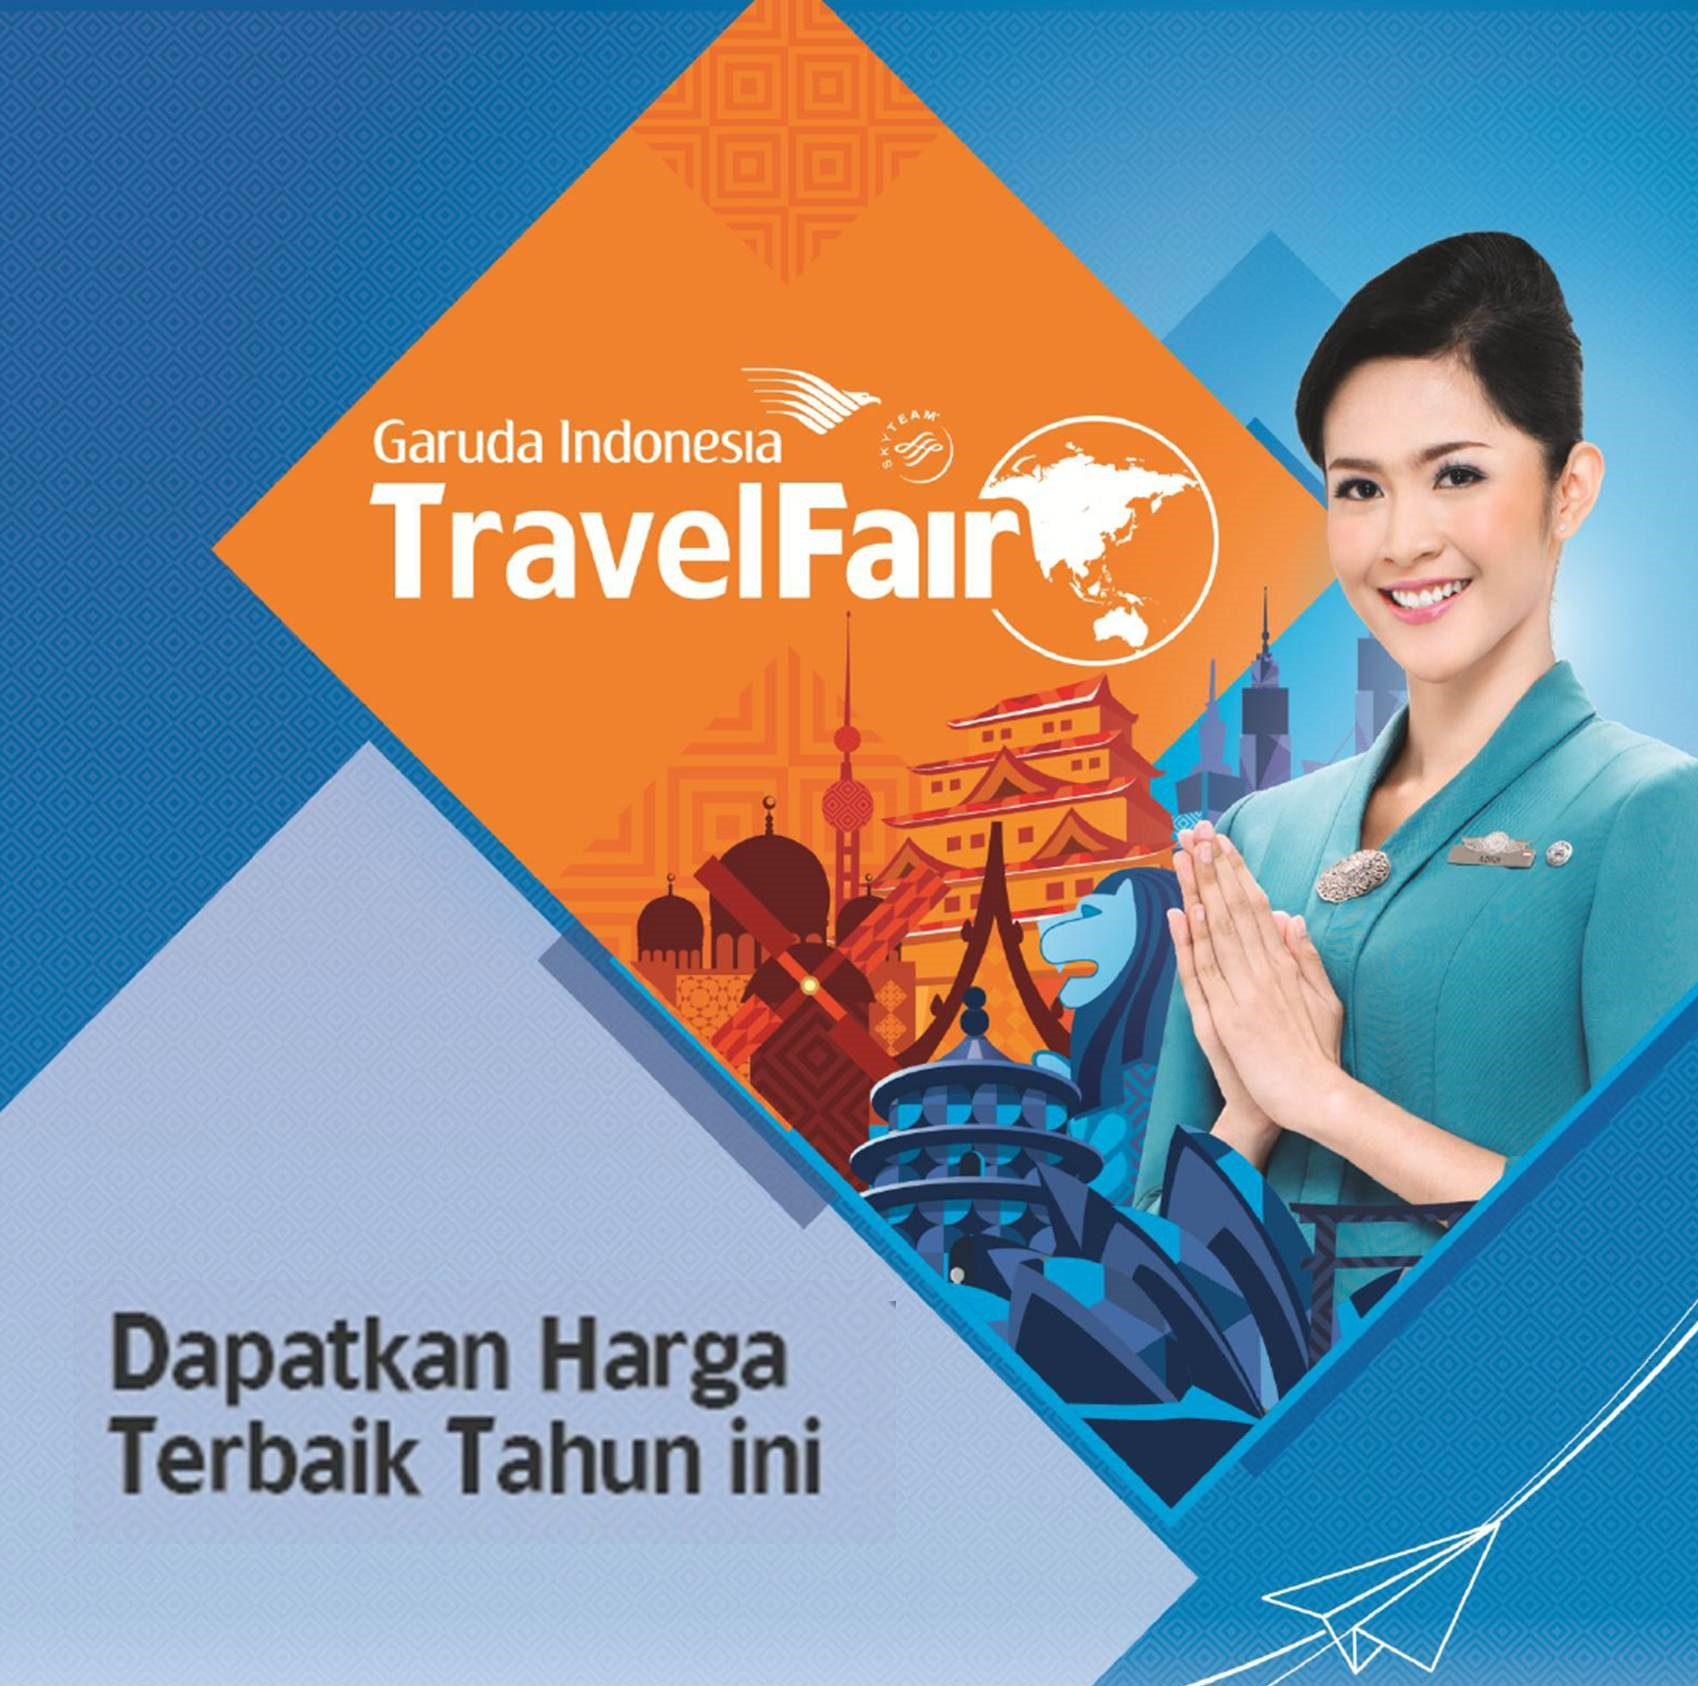 garuda-indonesia-travel-fair-gatf-september-2014 (2)